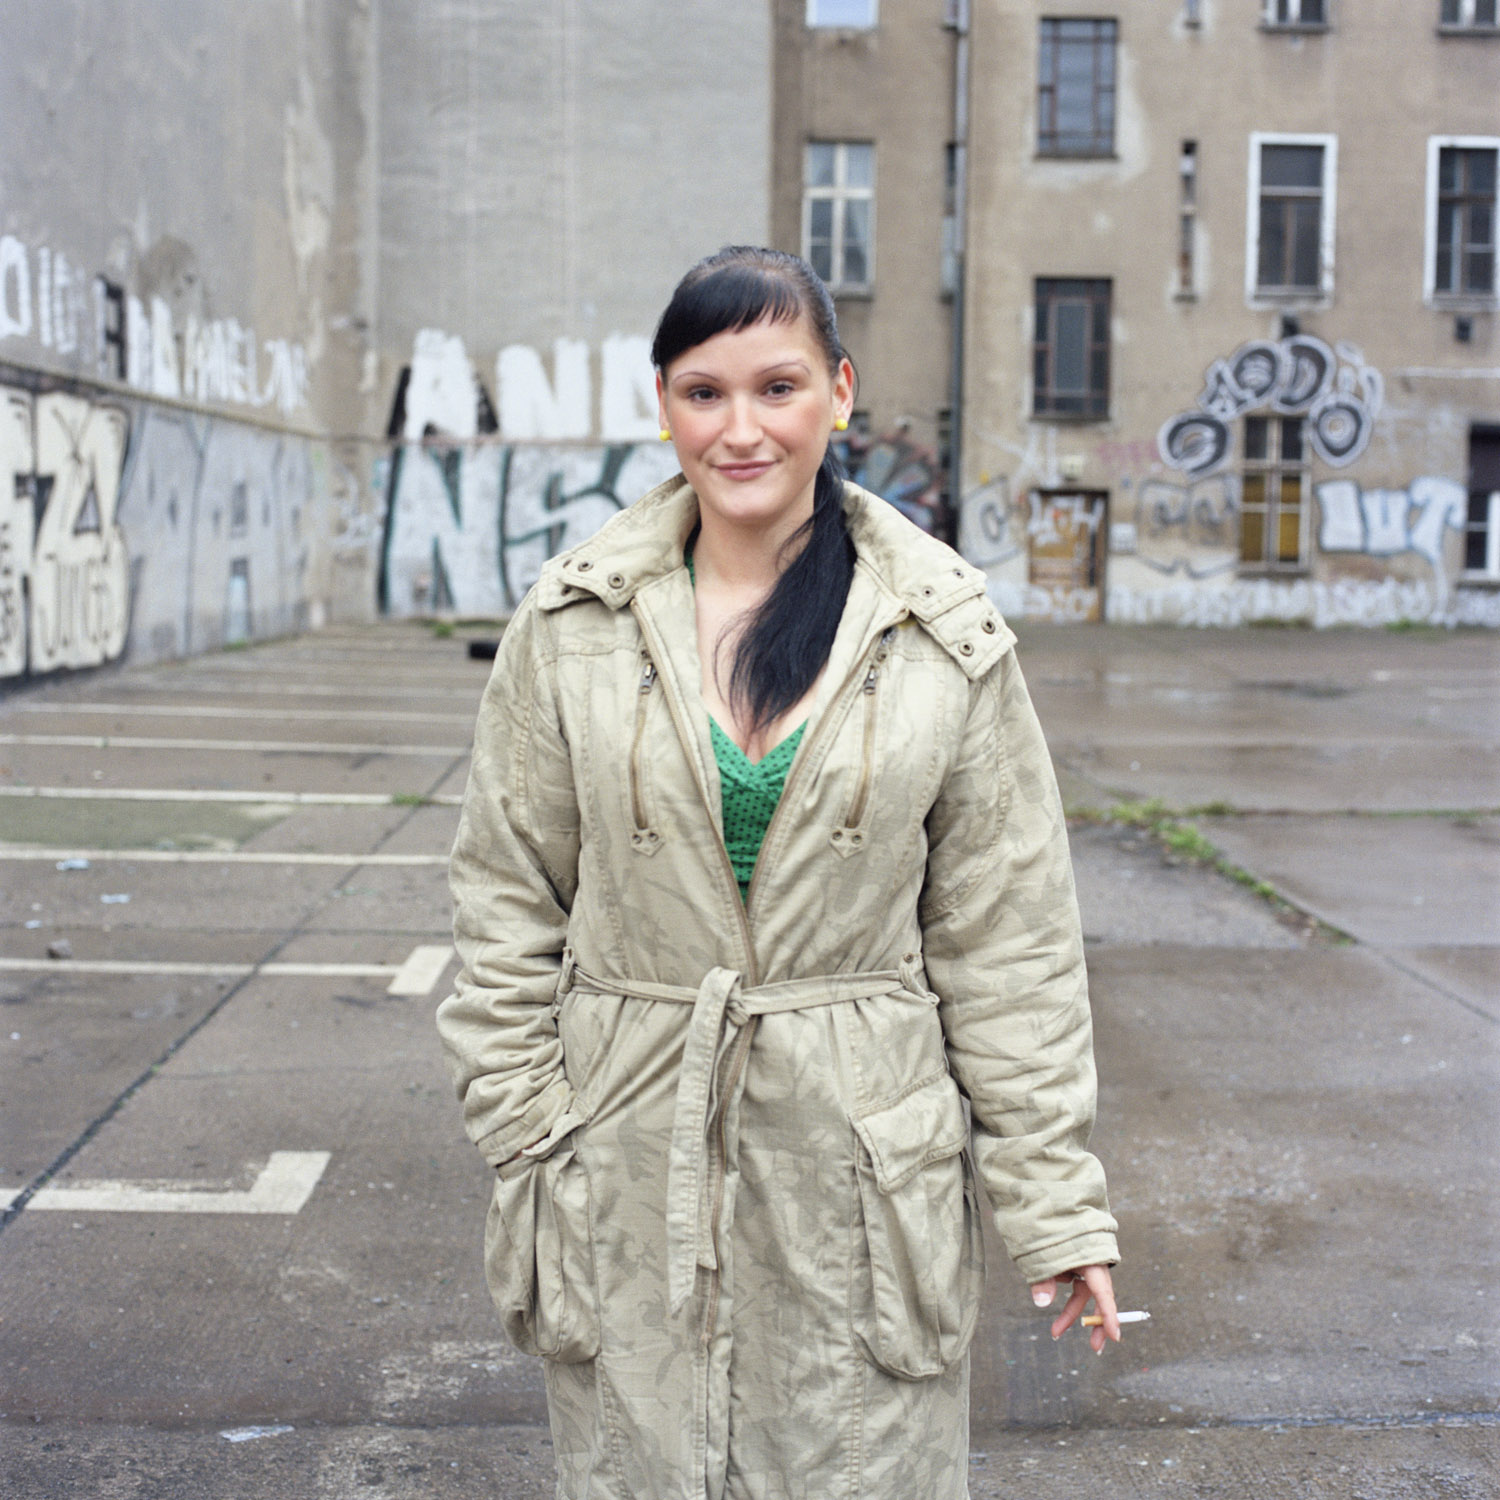 Nadine, 2008, from Berlin Project by Abby Storey